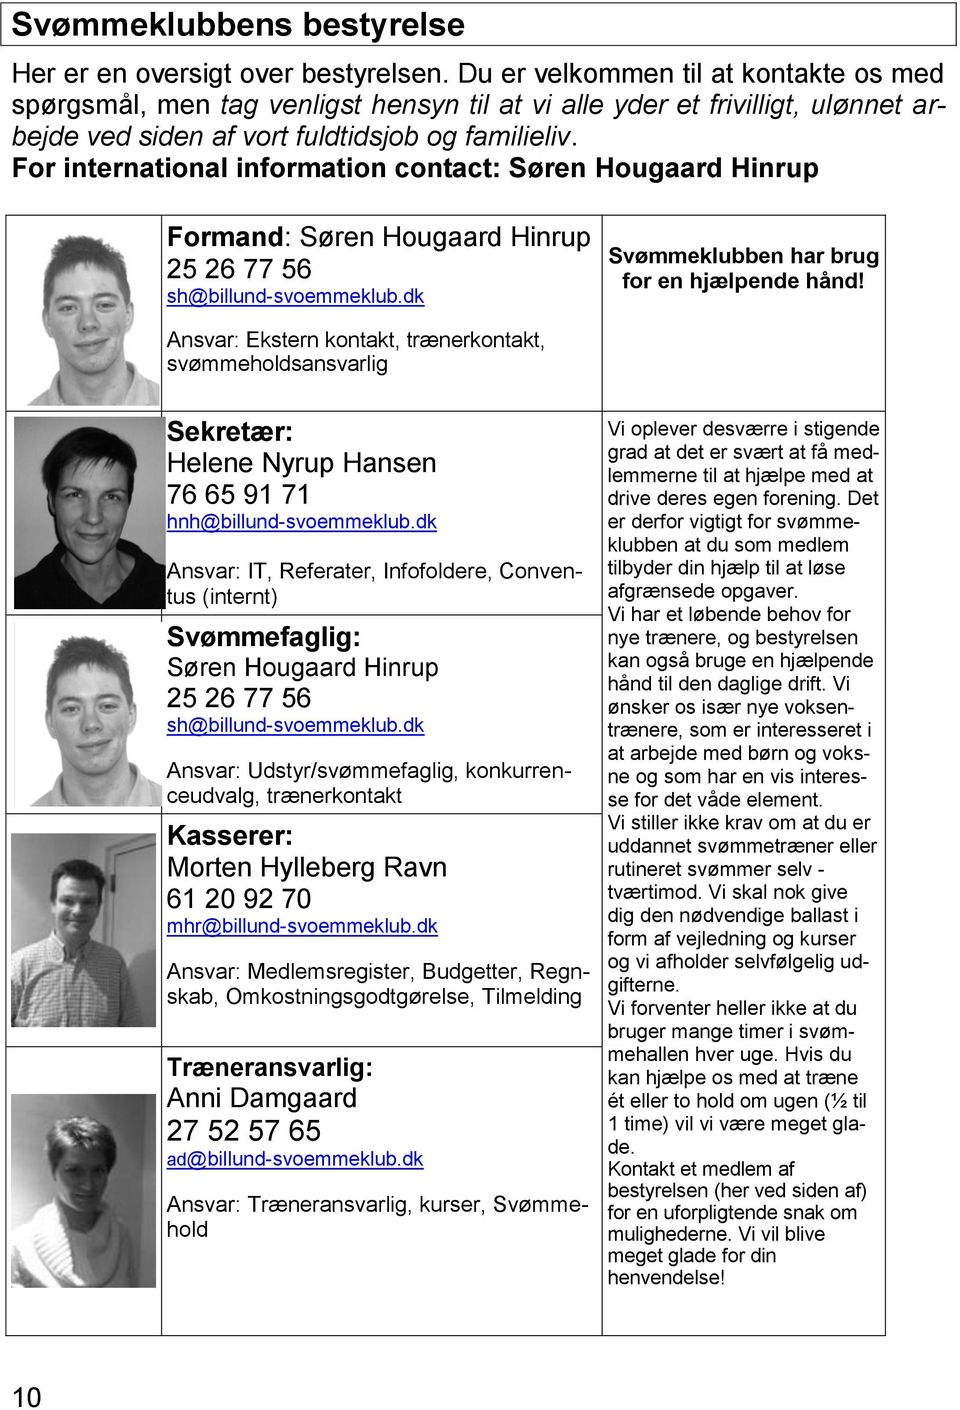 For international information contact: Søren Hougaard Hinrup Formand: Søren Hougaard Hinrup 25 26 77 56 sh@billund-svoemmeklub.dk Svømmeklubben har brug for en hjælpende hånd!